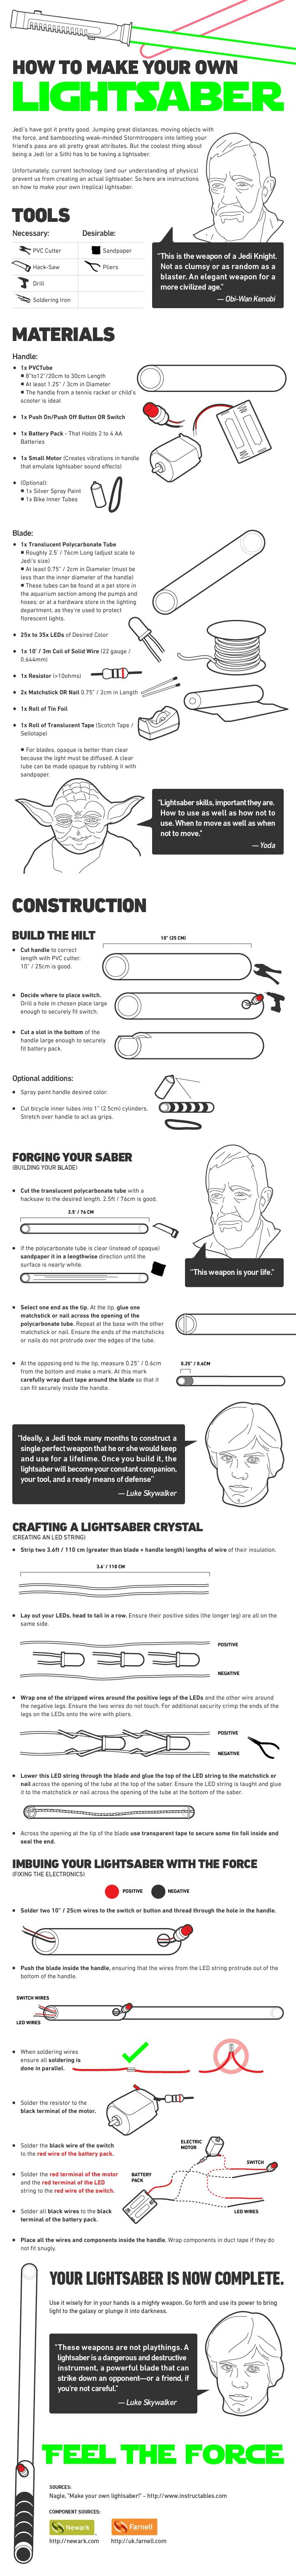 lightsaber infographic